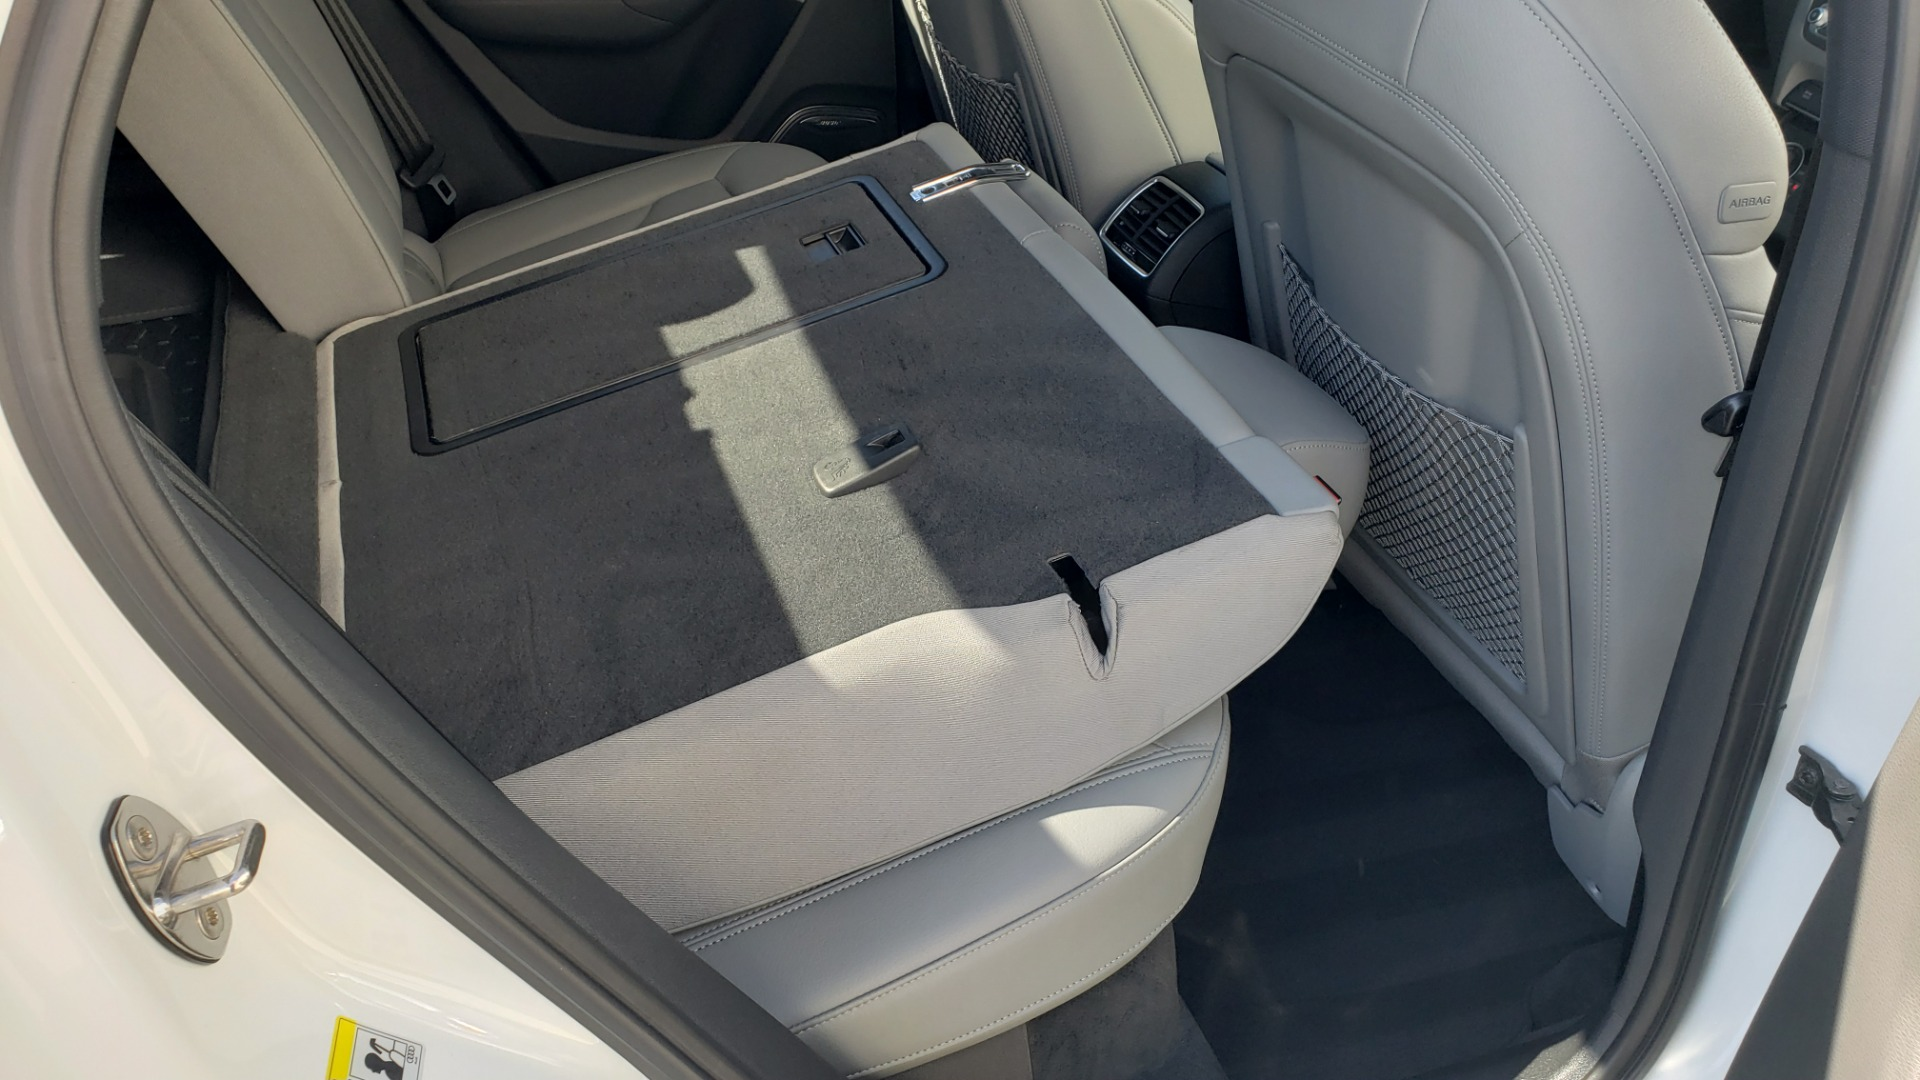 Used 2018 Audi Q3 PREMIUM PLUS 2.0T / SPORT PKG / NAV / BOSE / SUNROOF / REARVIEW for sale Sold at Formula Imports in Charlotte NC 28227 68